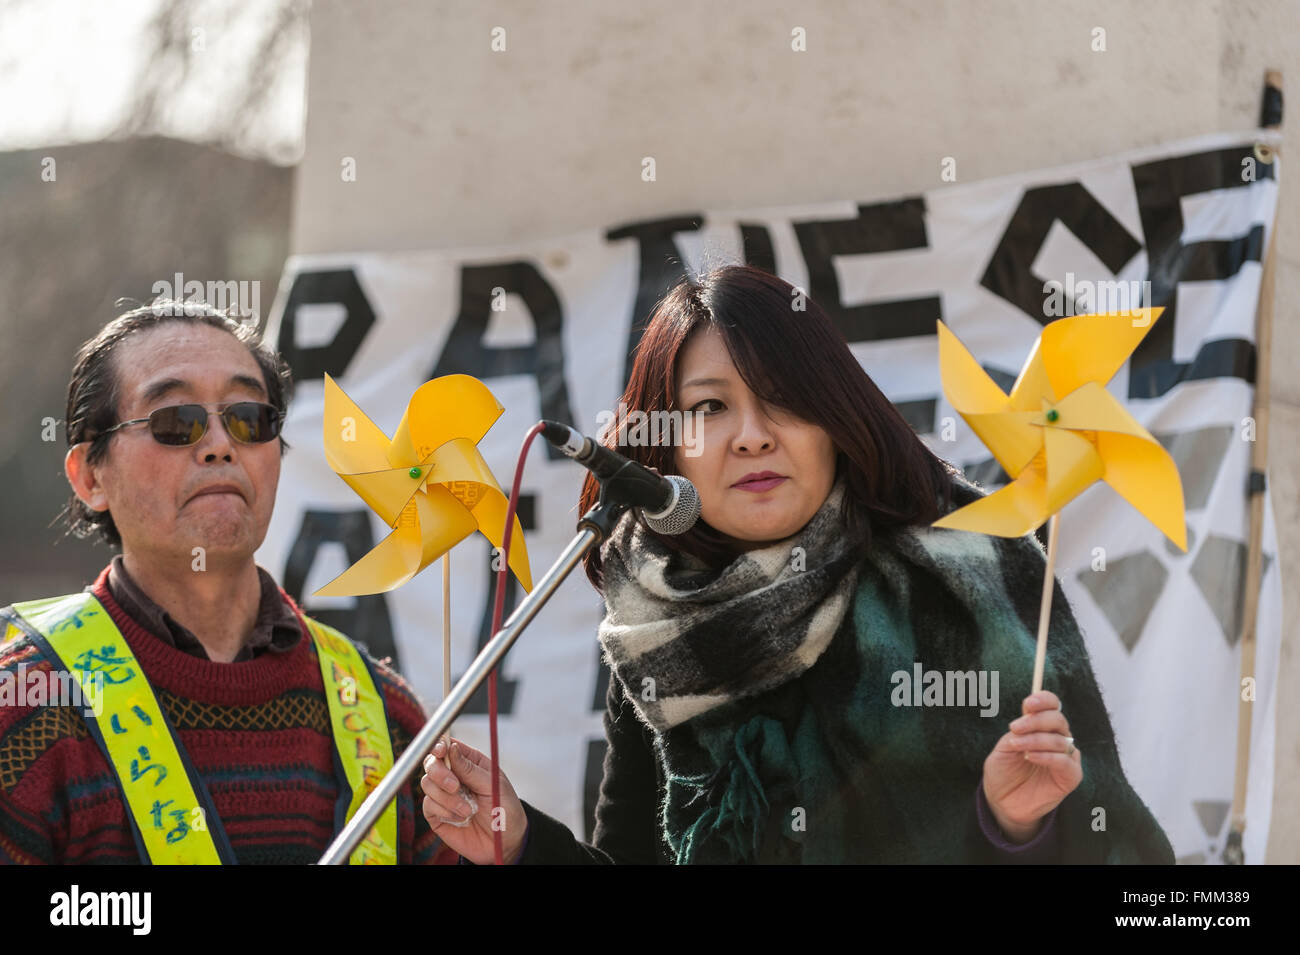 London, UK. 12 March 2016. Japanese speakers at a rally held outside the Houses of Parliament in Westminster to - Stock Image